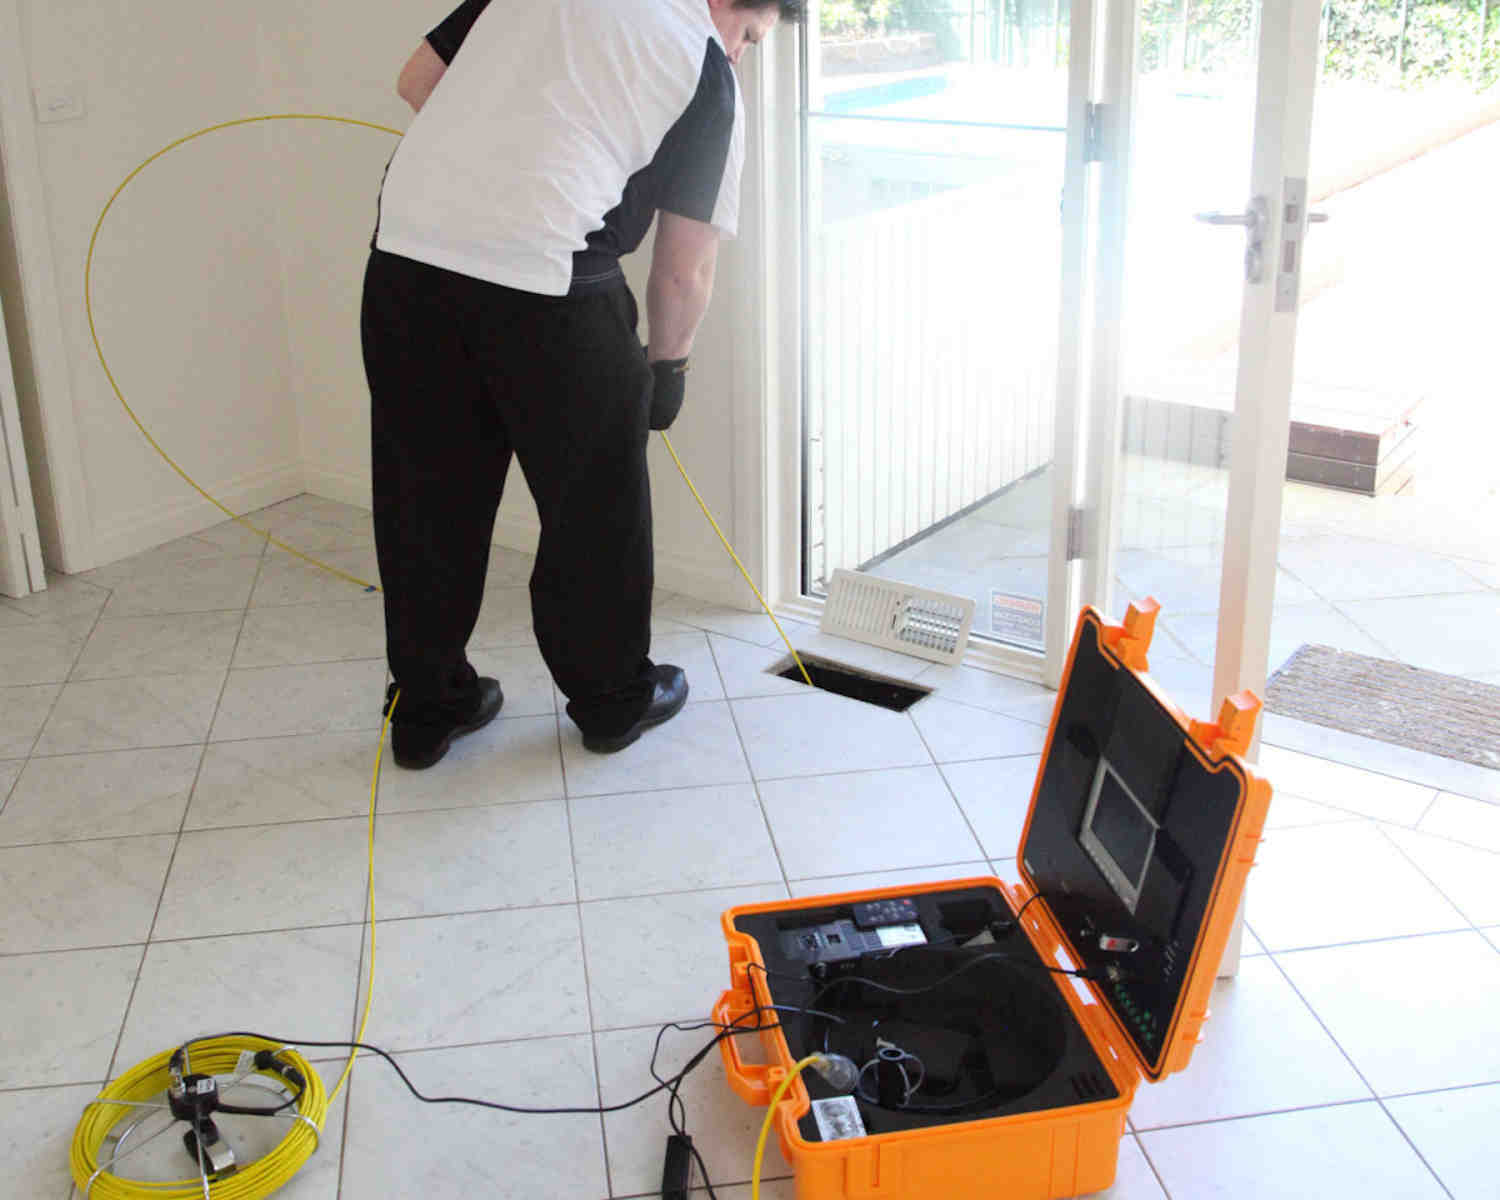 Duct Cleaning Melbourne - Duct video inspection camera